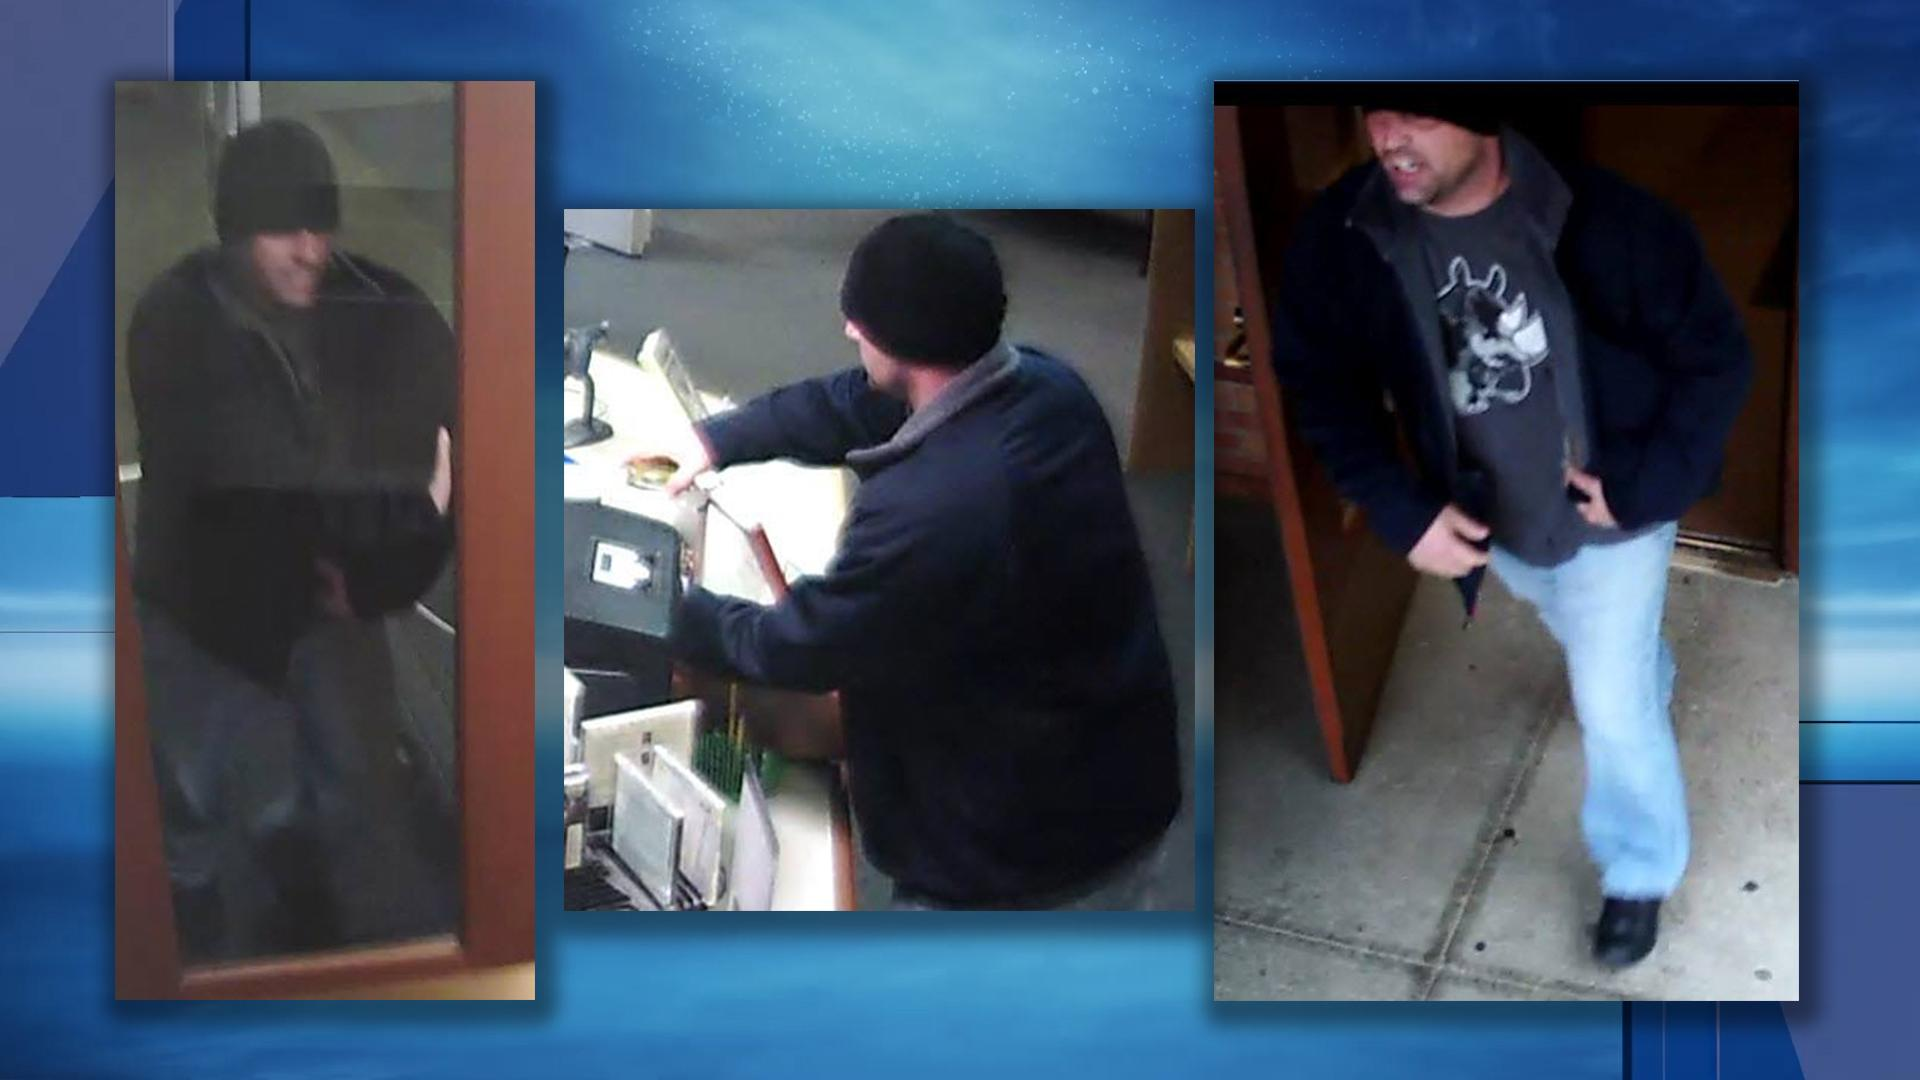 The Cranston Police Department is asking the public to help the identify a man who stole a donation jar from an area library. (Police photos)